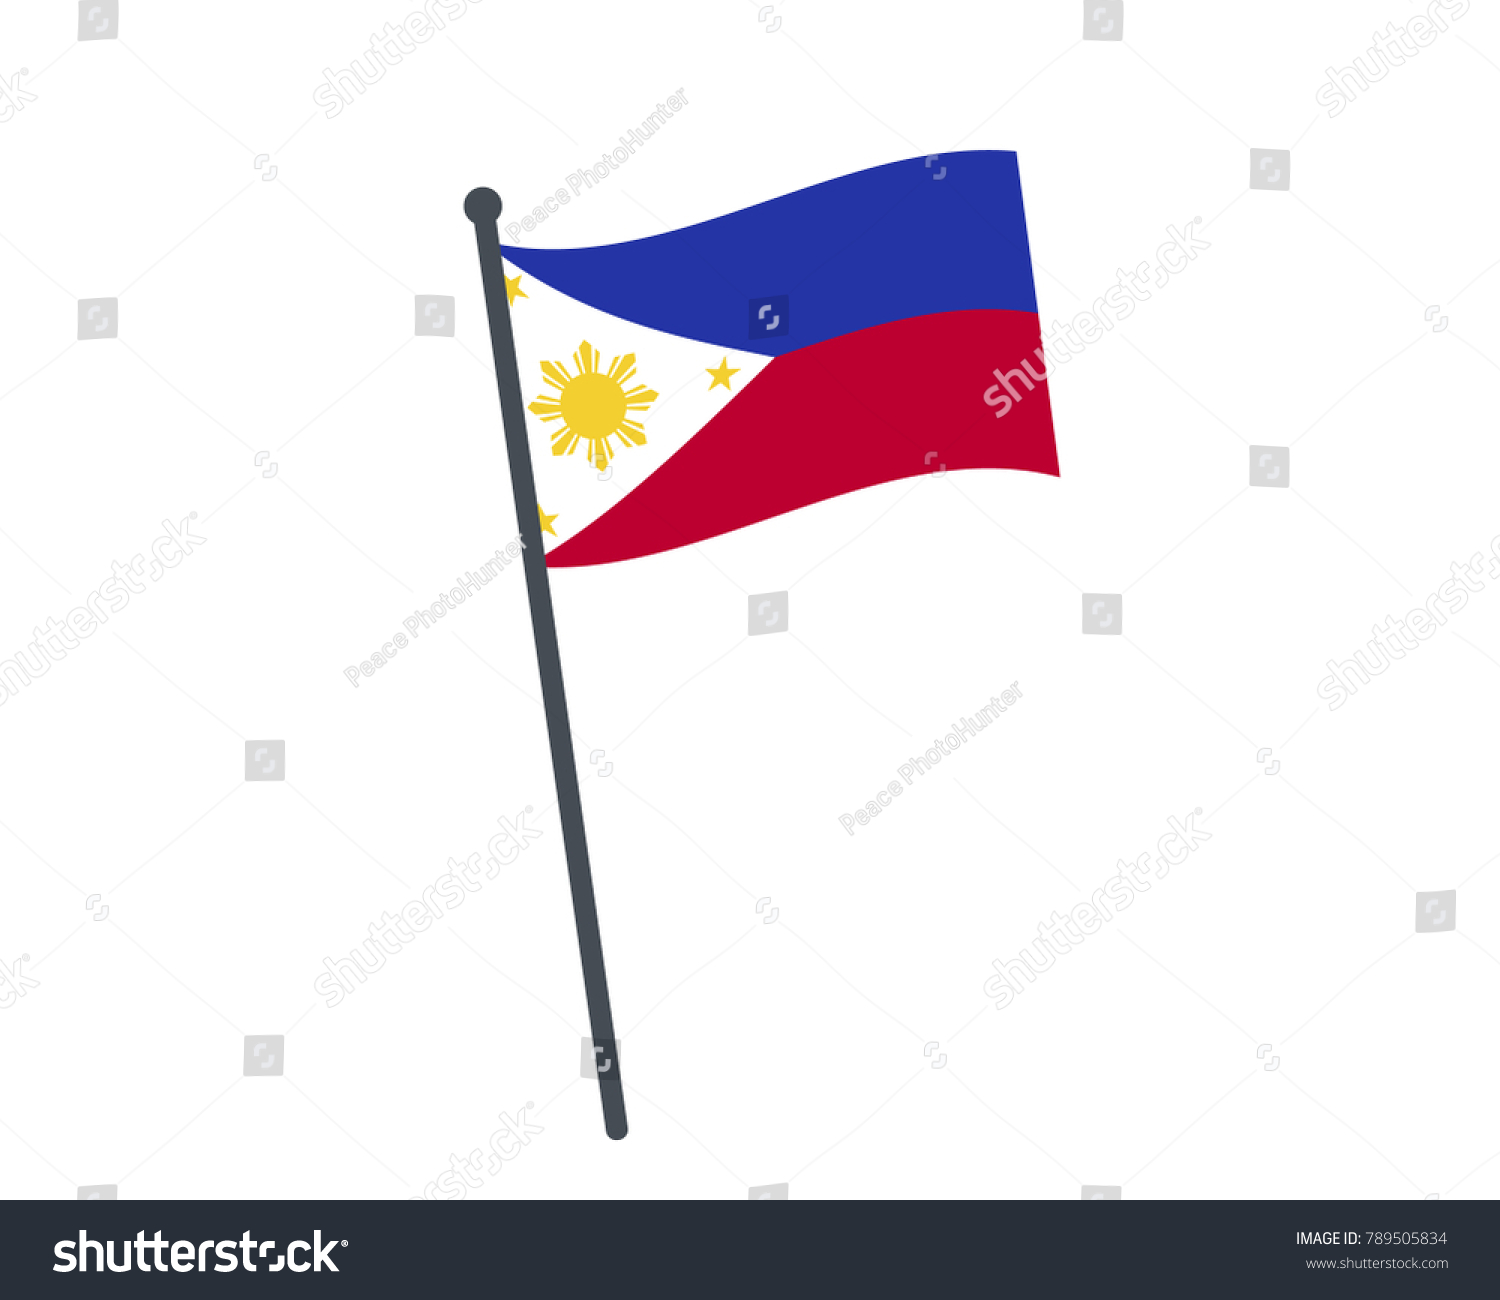 Philippines flag national flag philippines on stock vector philippines flag the national flag of philippines on a pole the waving flag biocorpaavc Choice Image